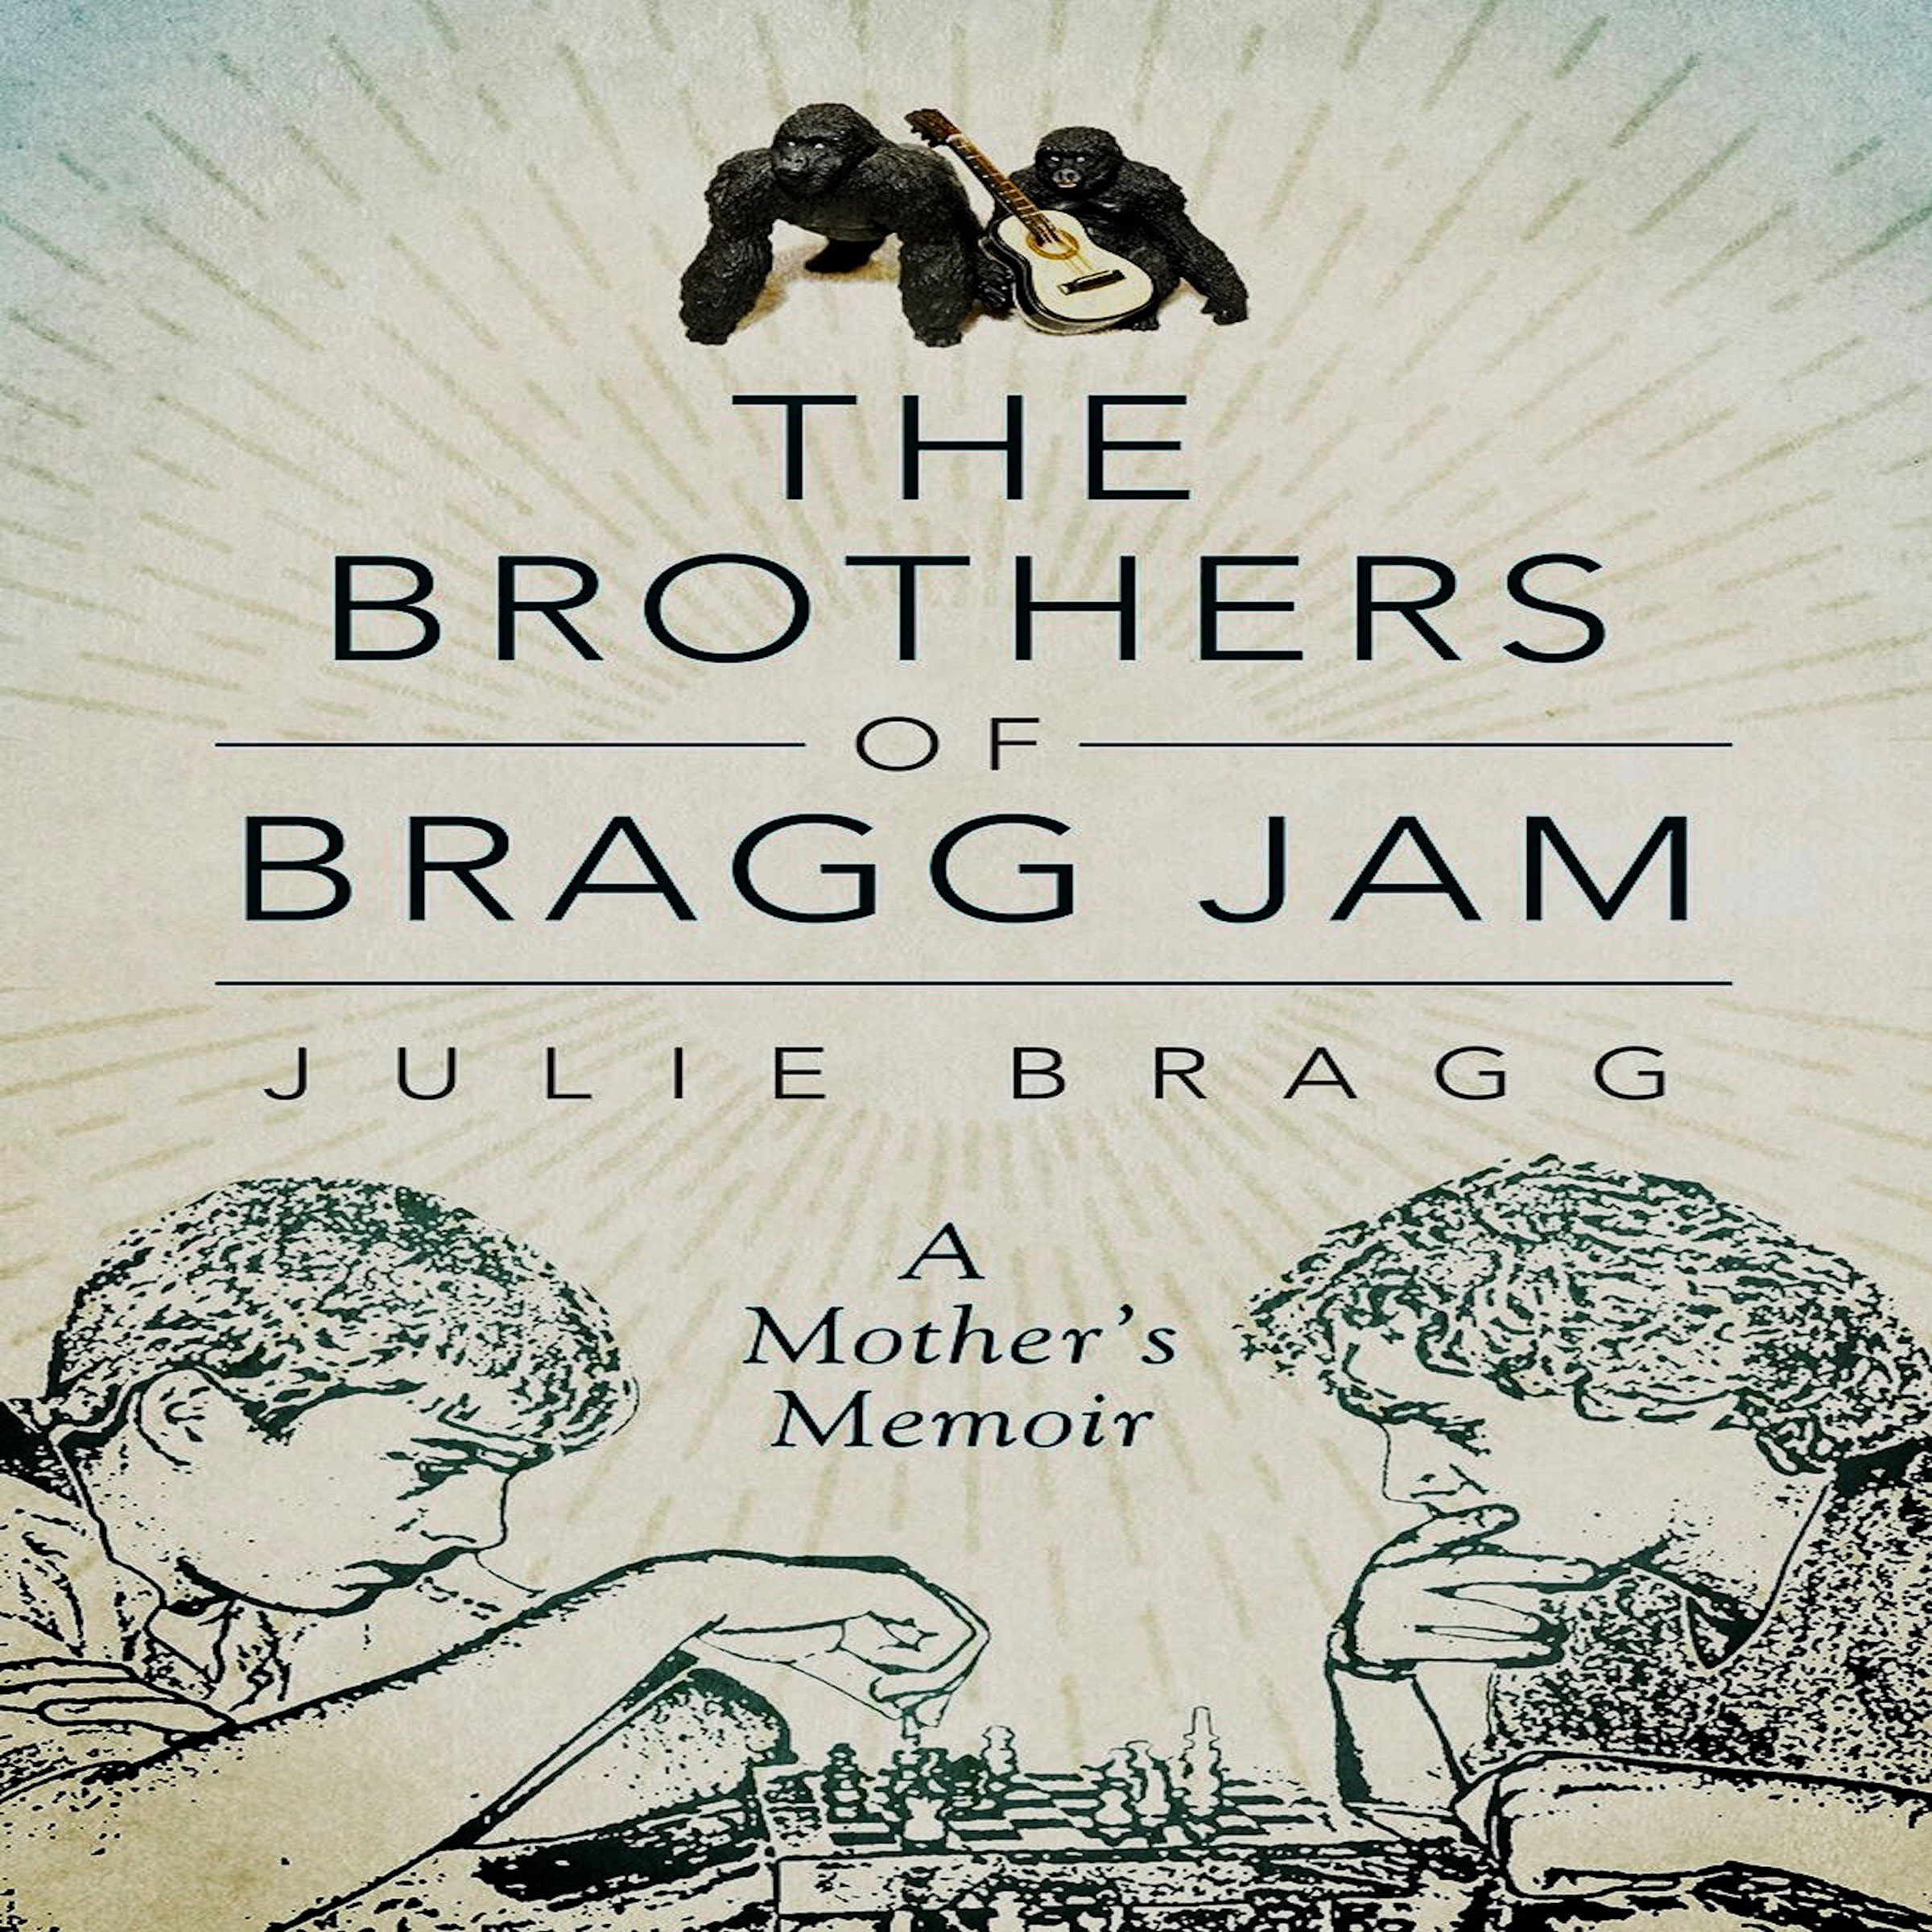 The Brothers of Bragg Jam